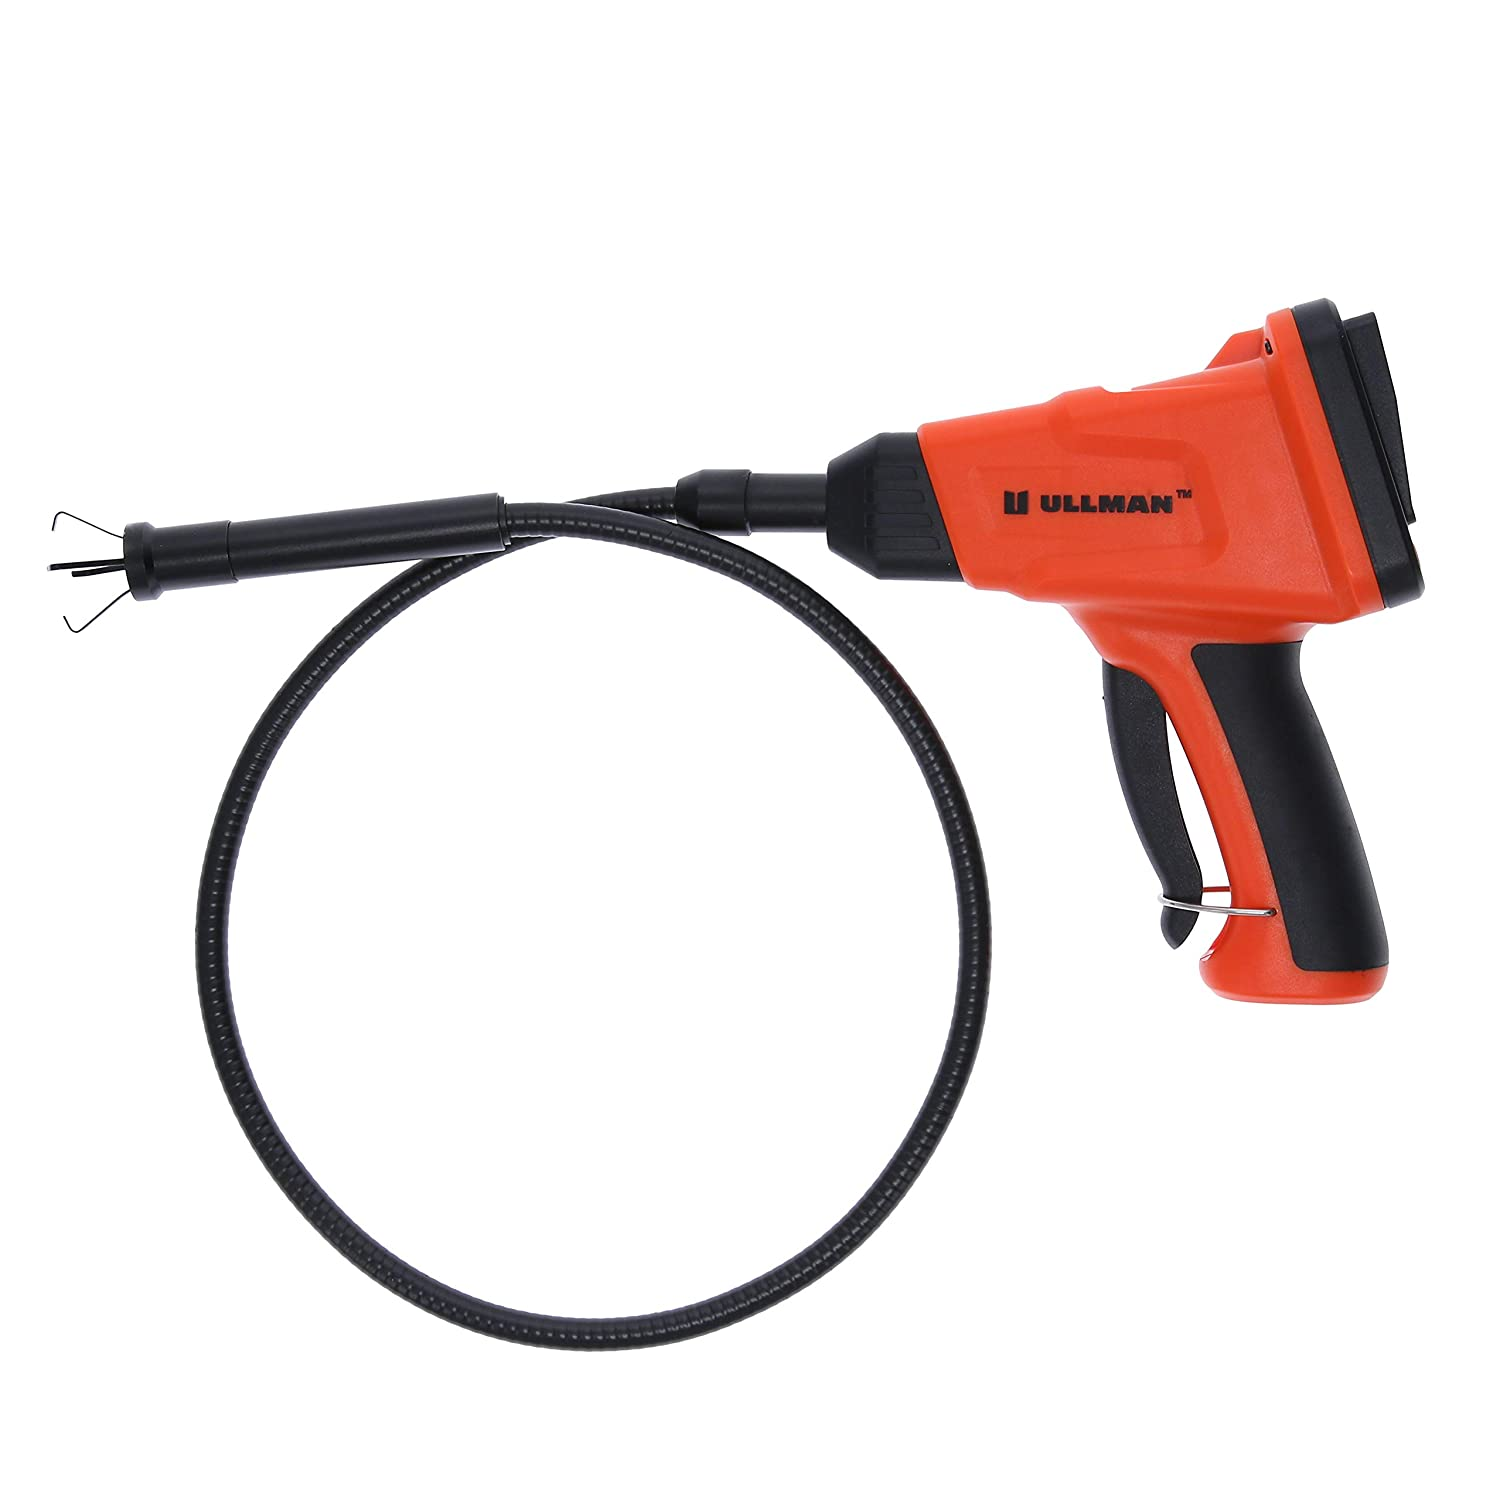 Ullman Devices Camera Assisted Retrieval f CART Perfect Under blast sales - Tool latest